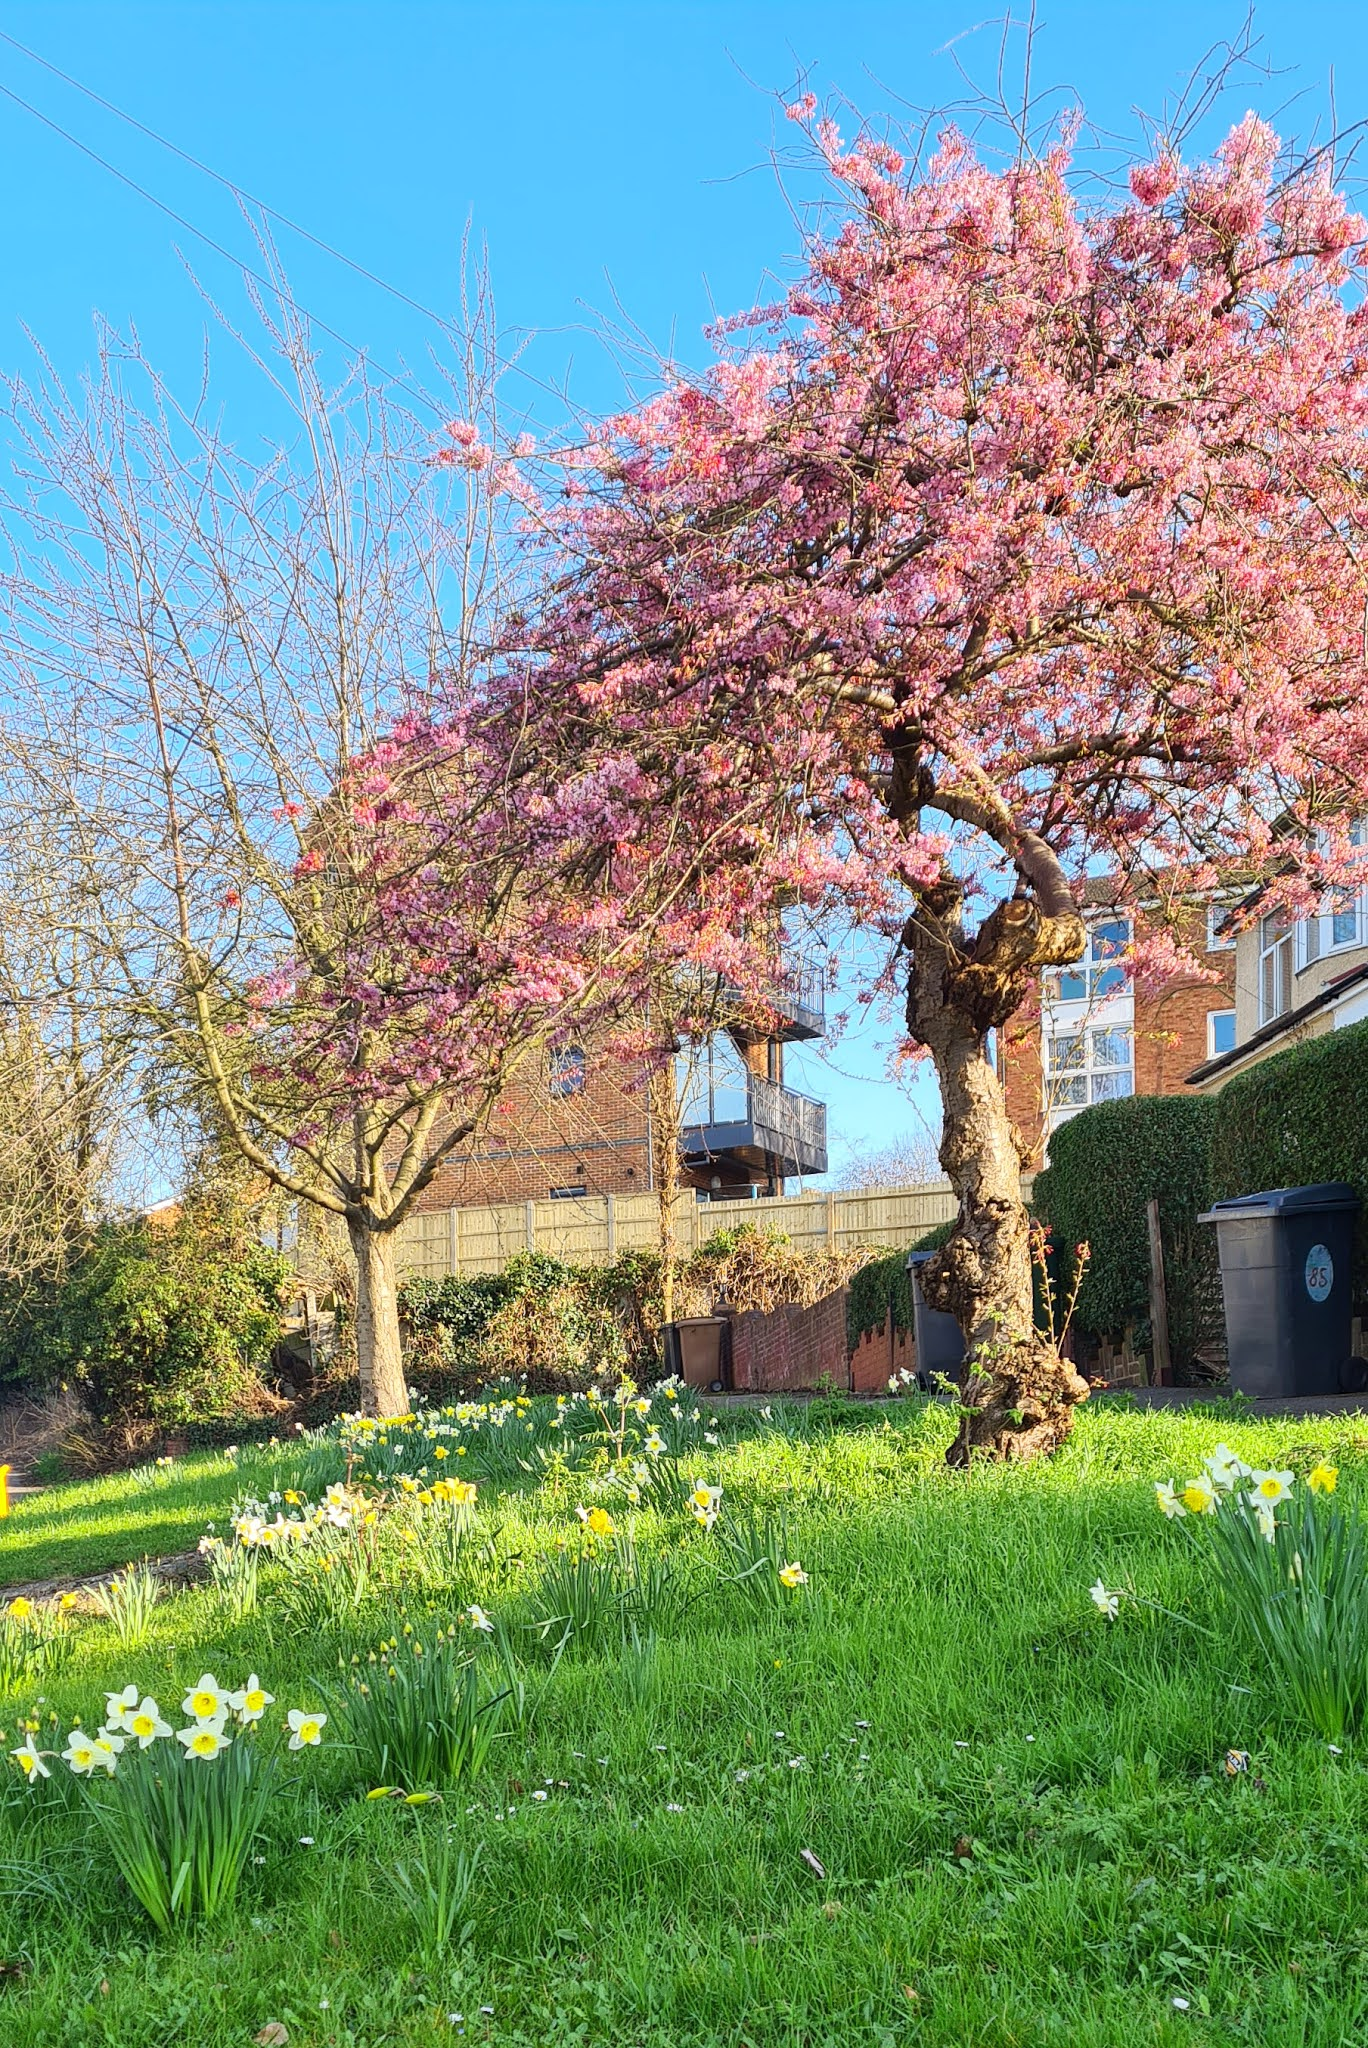 Daffodils and a cherry tree in blossom on the verge of a main road in East London: Is This Mutton